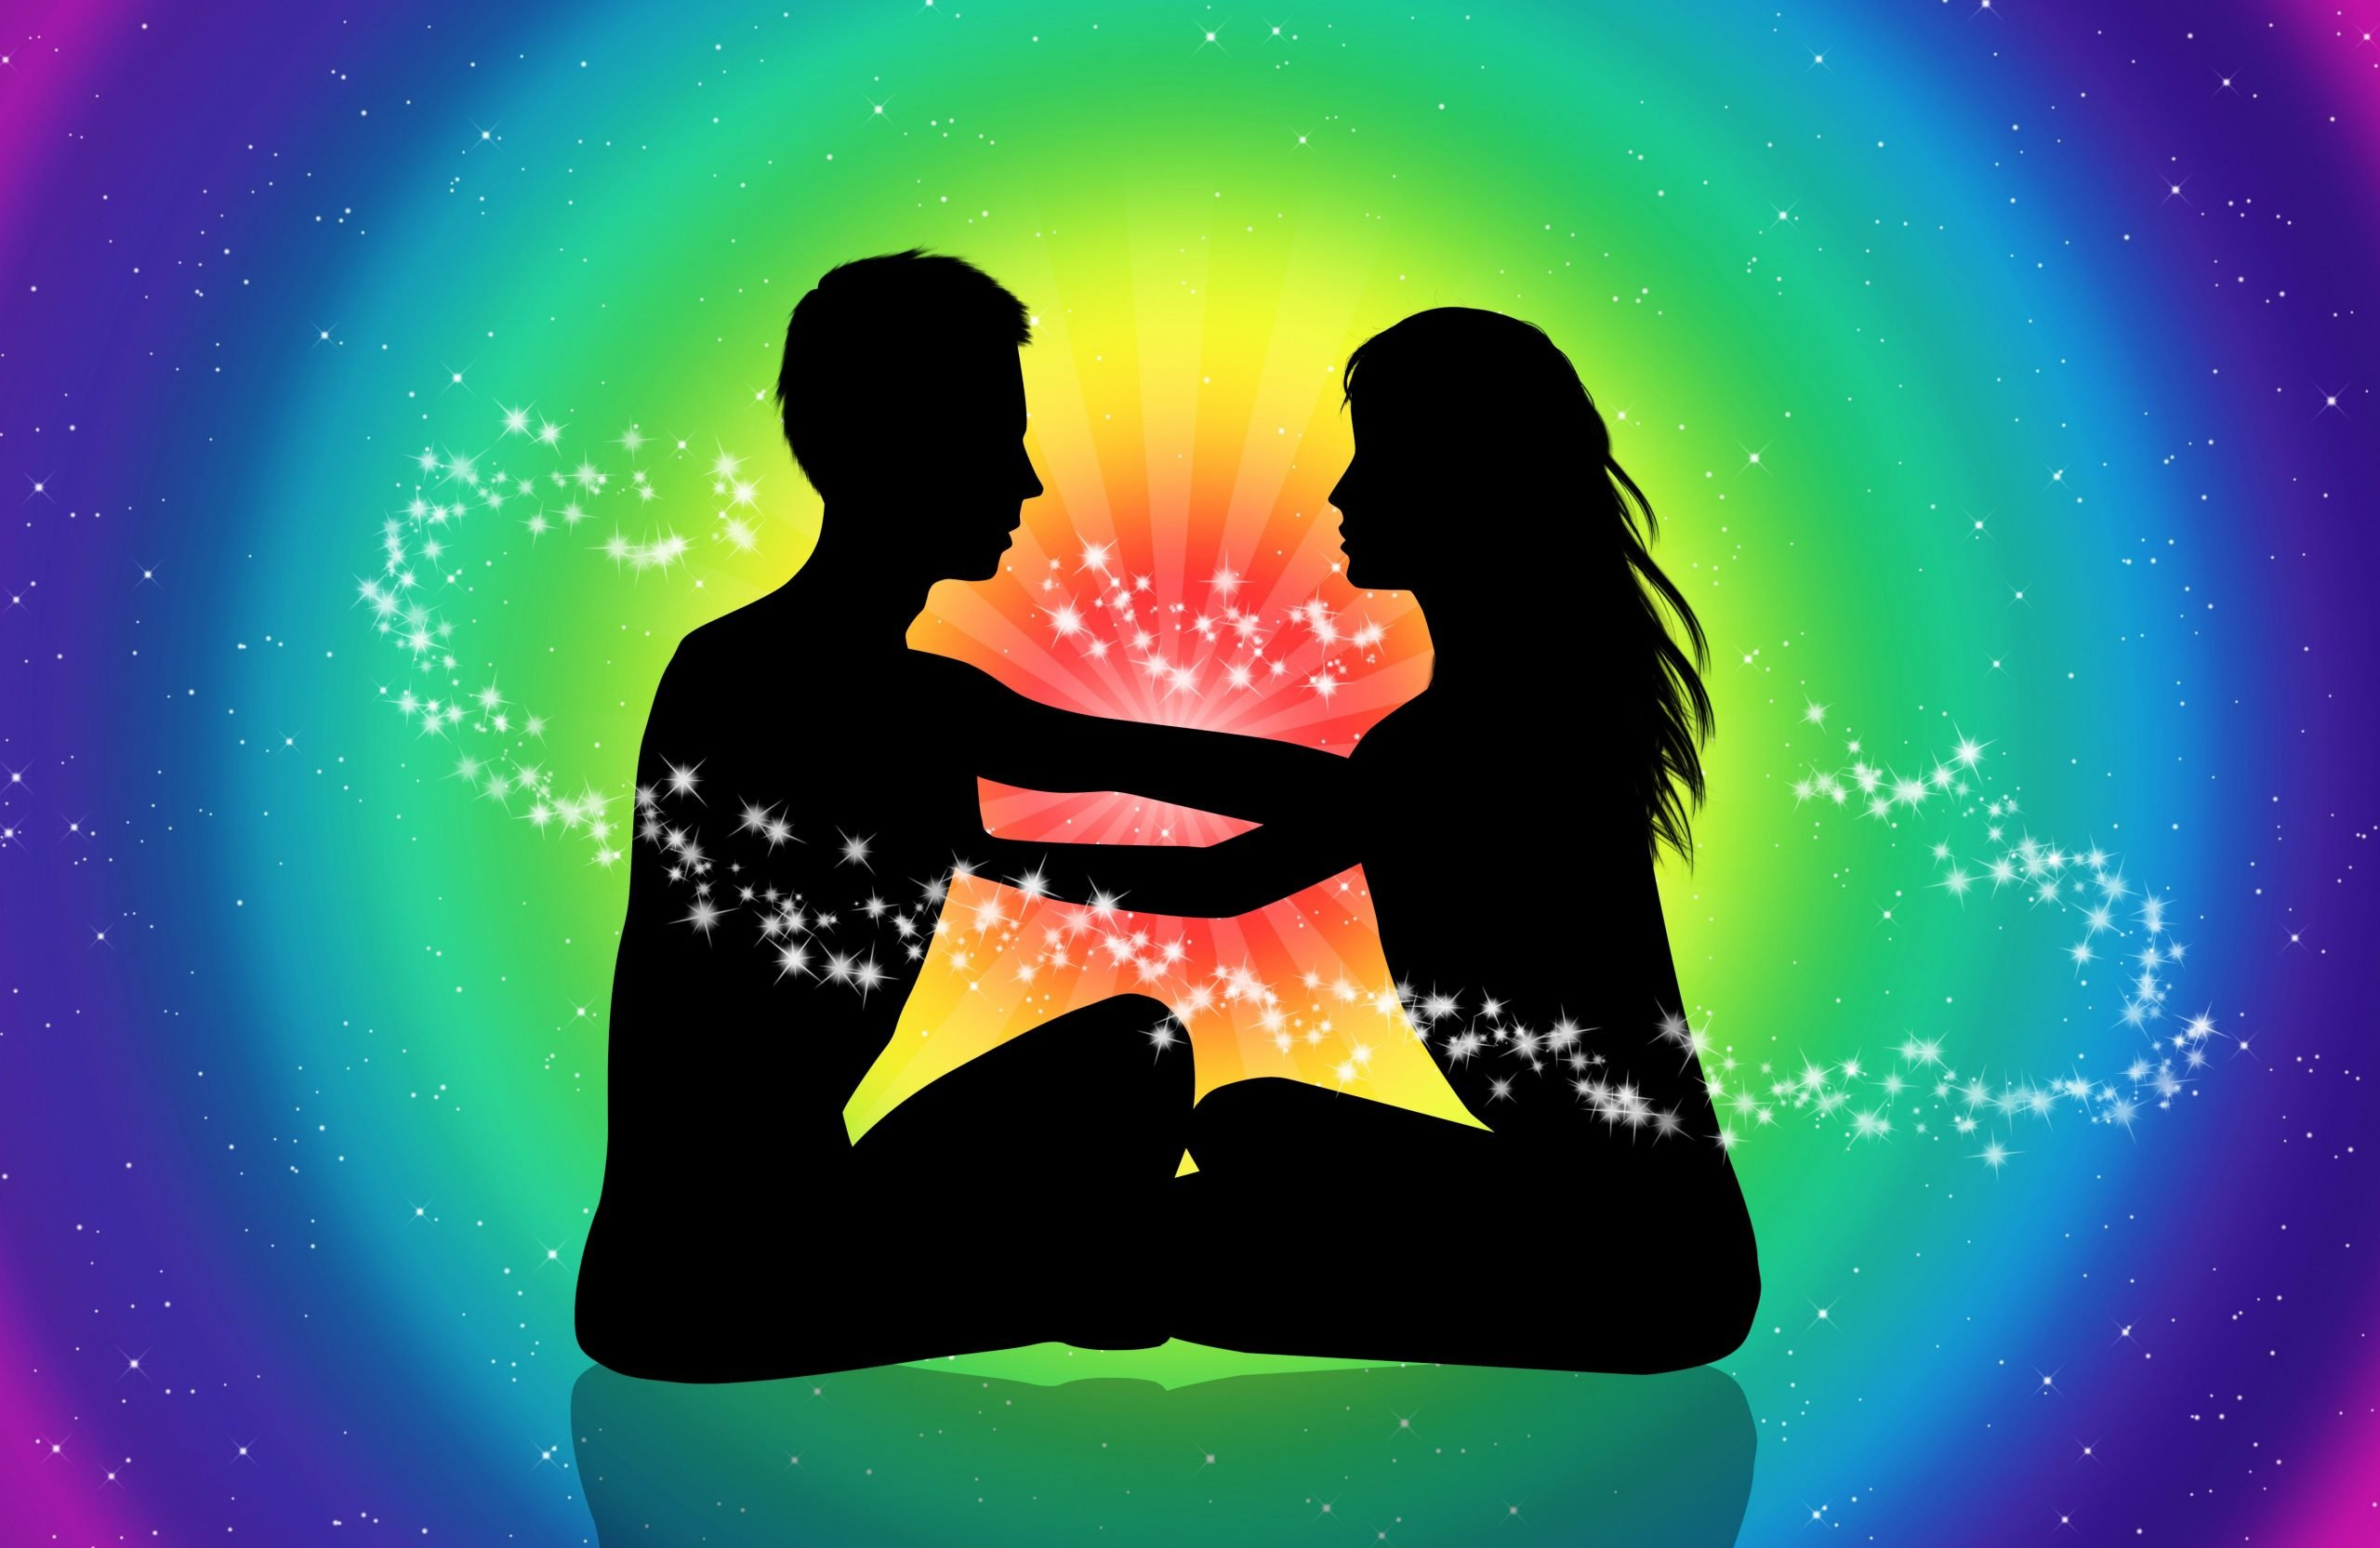 Tantra Sex Intimacy Relationship Love